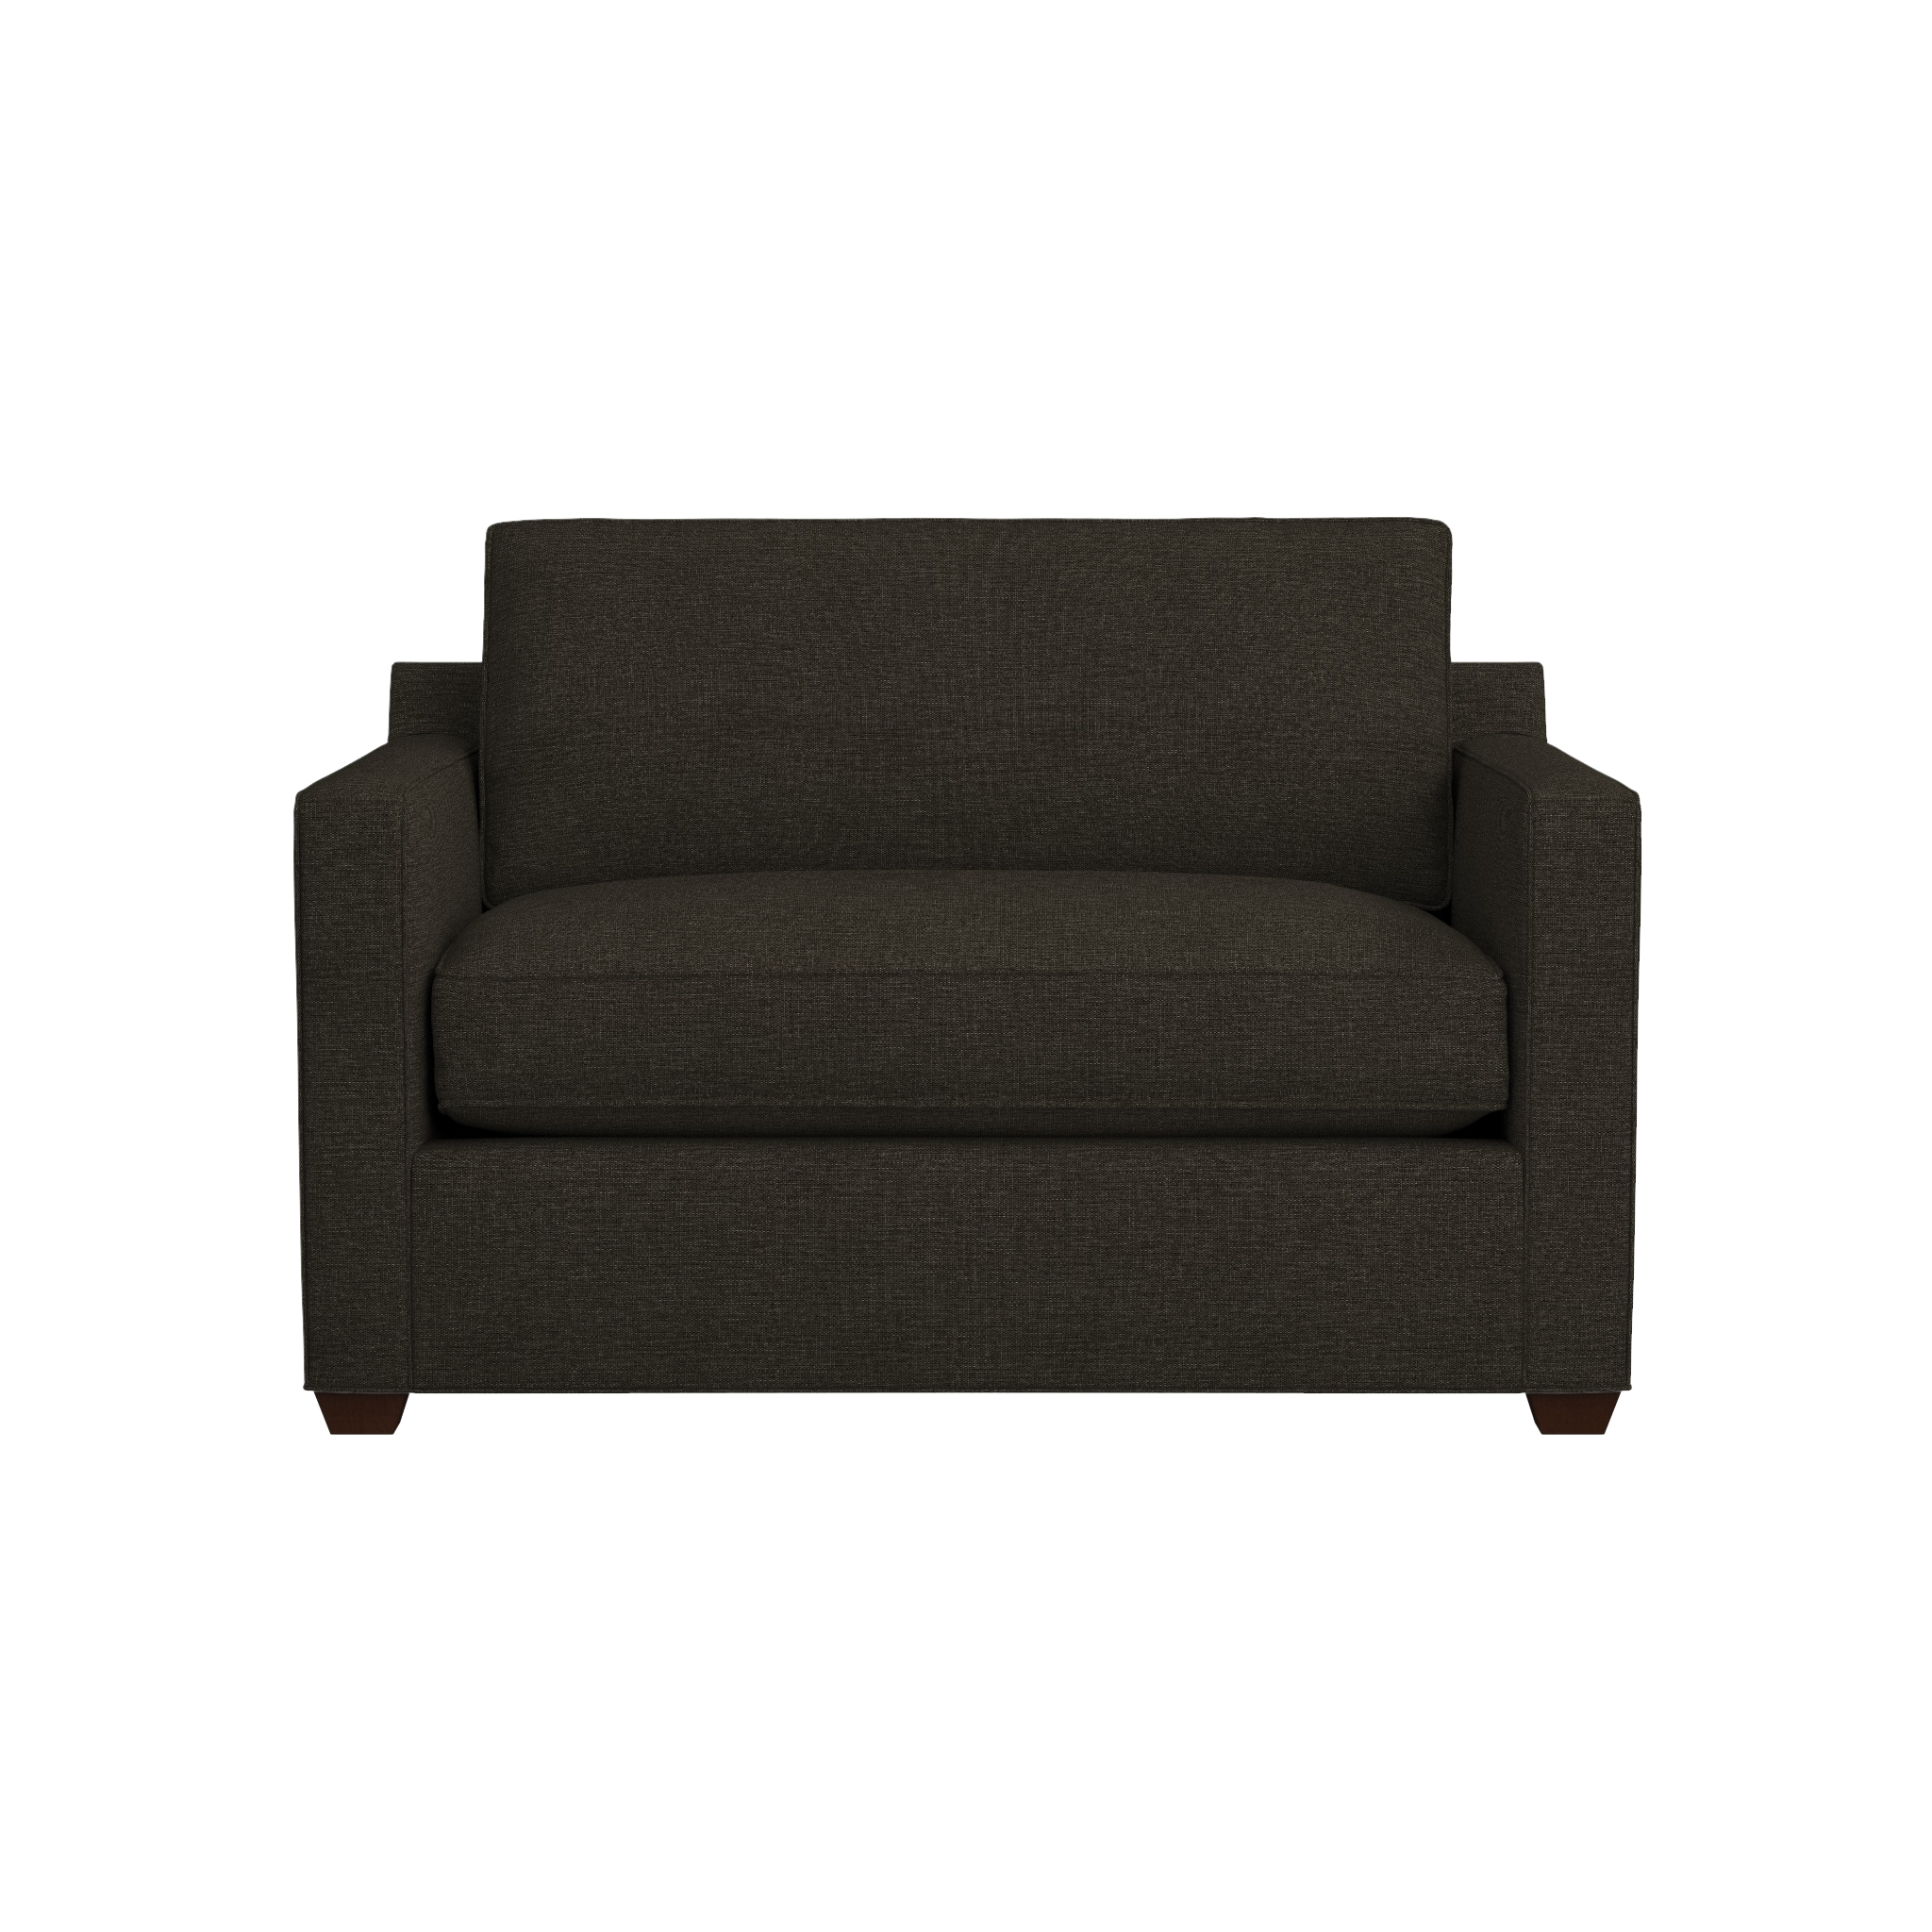 Davis Sleeper Armchair | Crate And Barrel With Regard To Crate And Barrel Sofa Sleepers (Image 10 of 20)